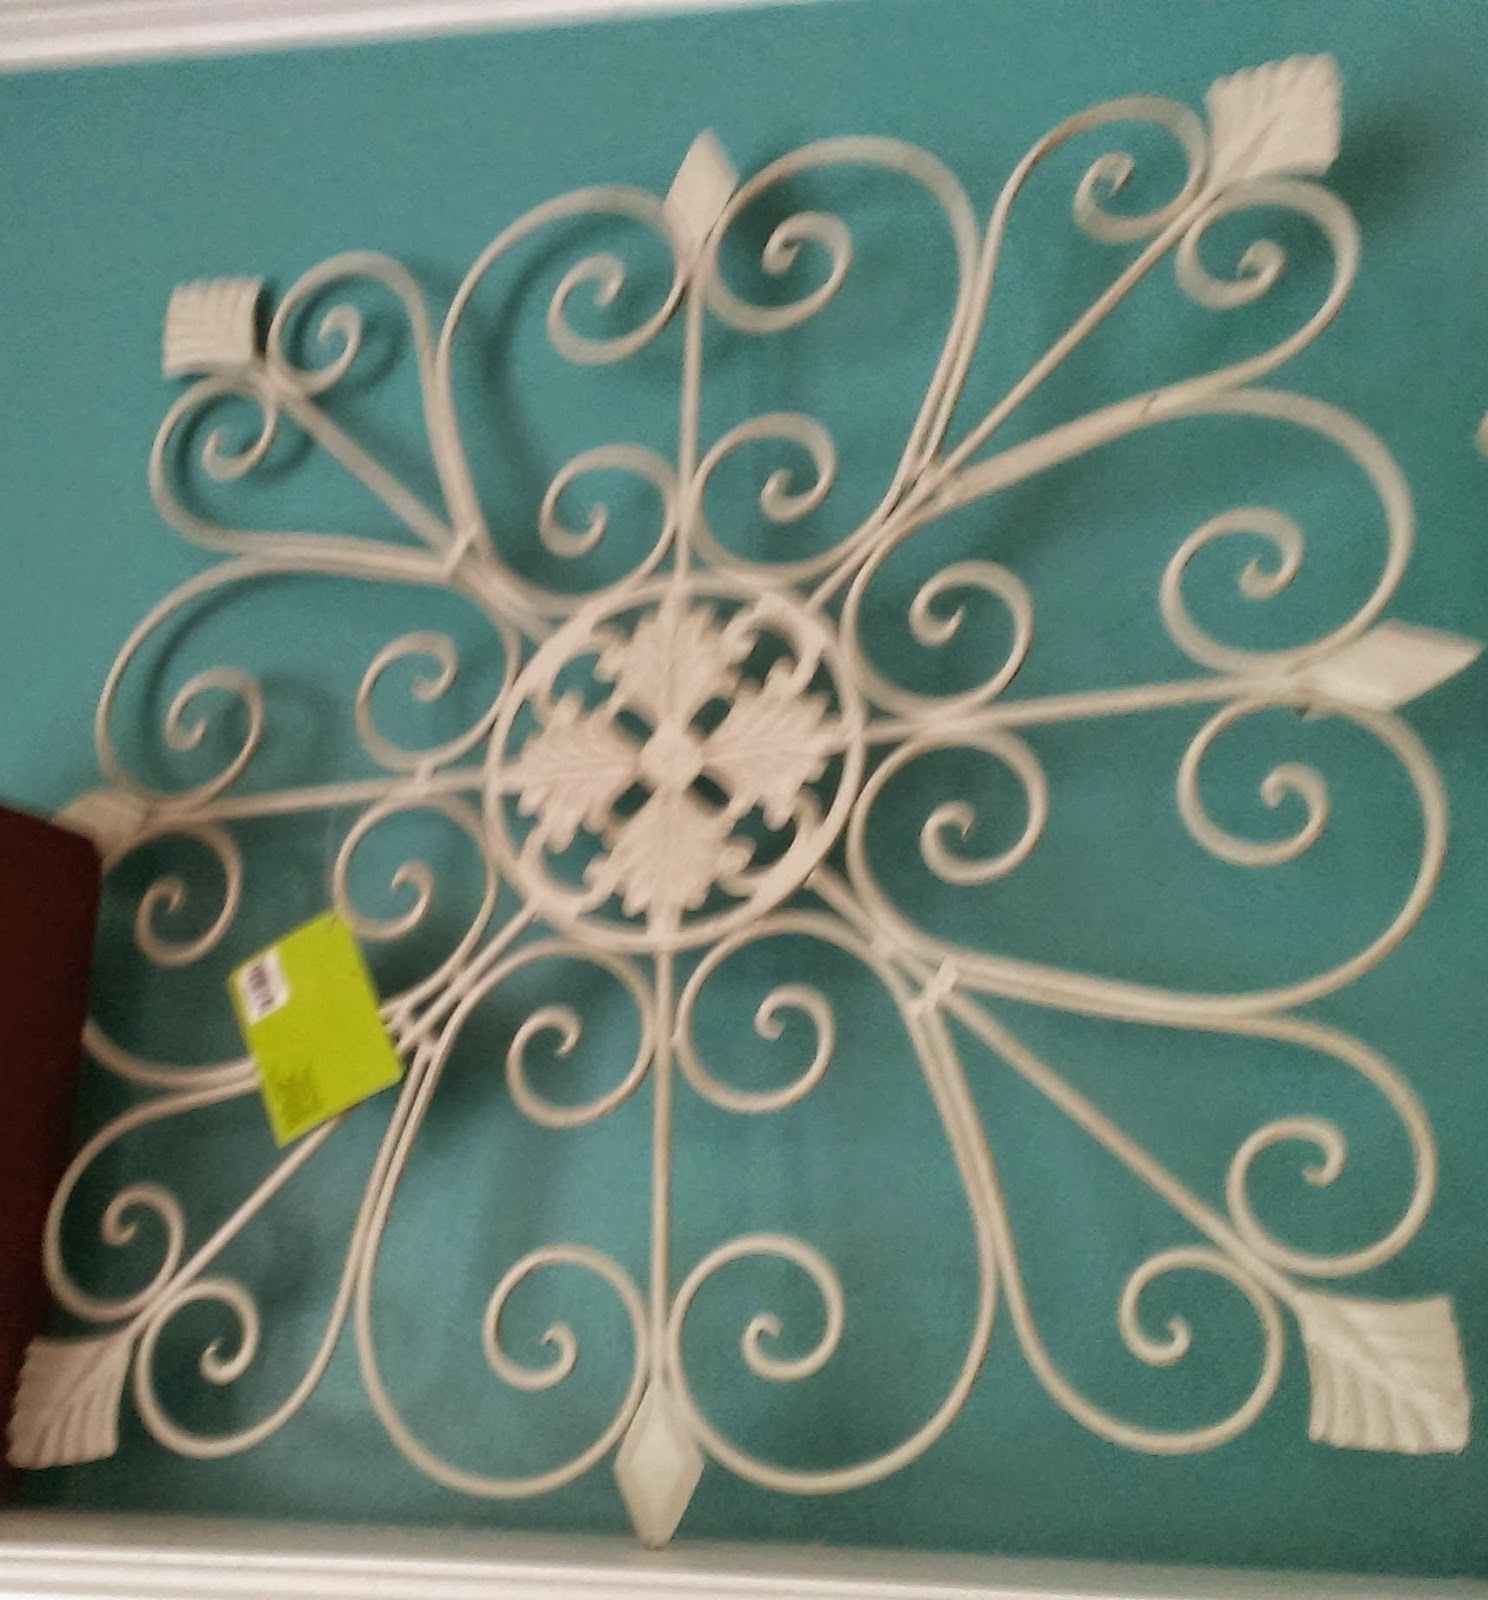 Favorite Luxury Metal Wall Art Decor Hobby Lobby (View 5 of 15)